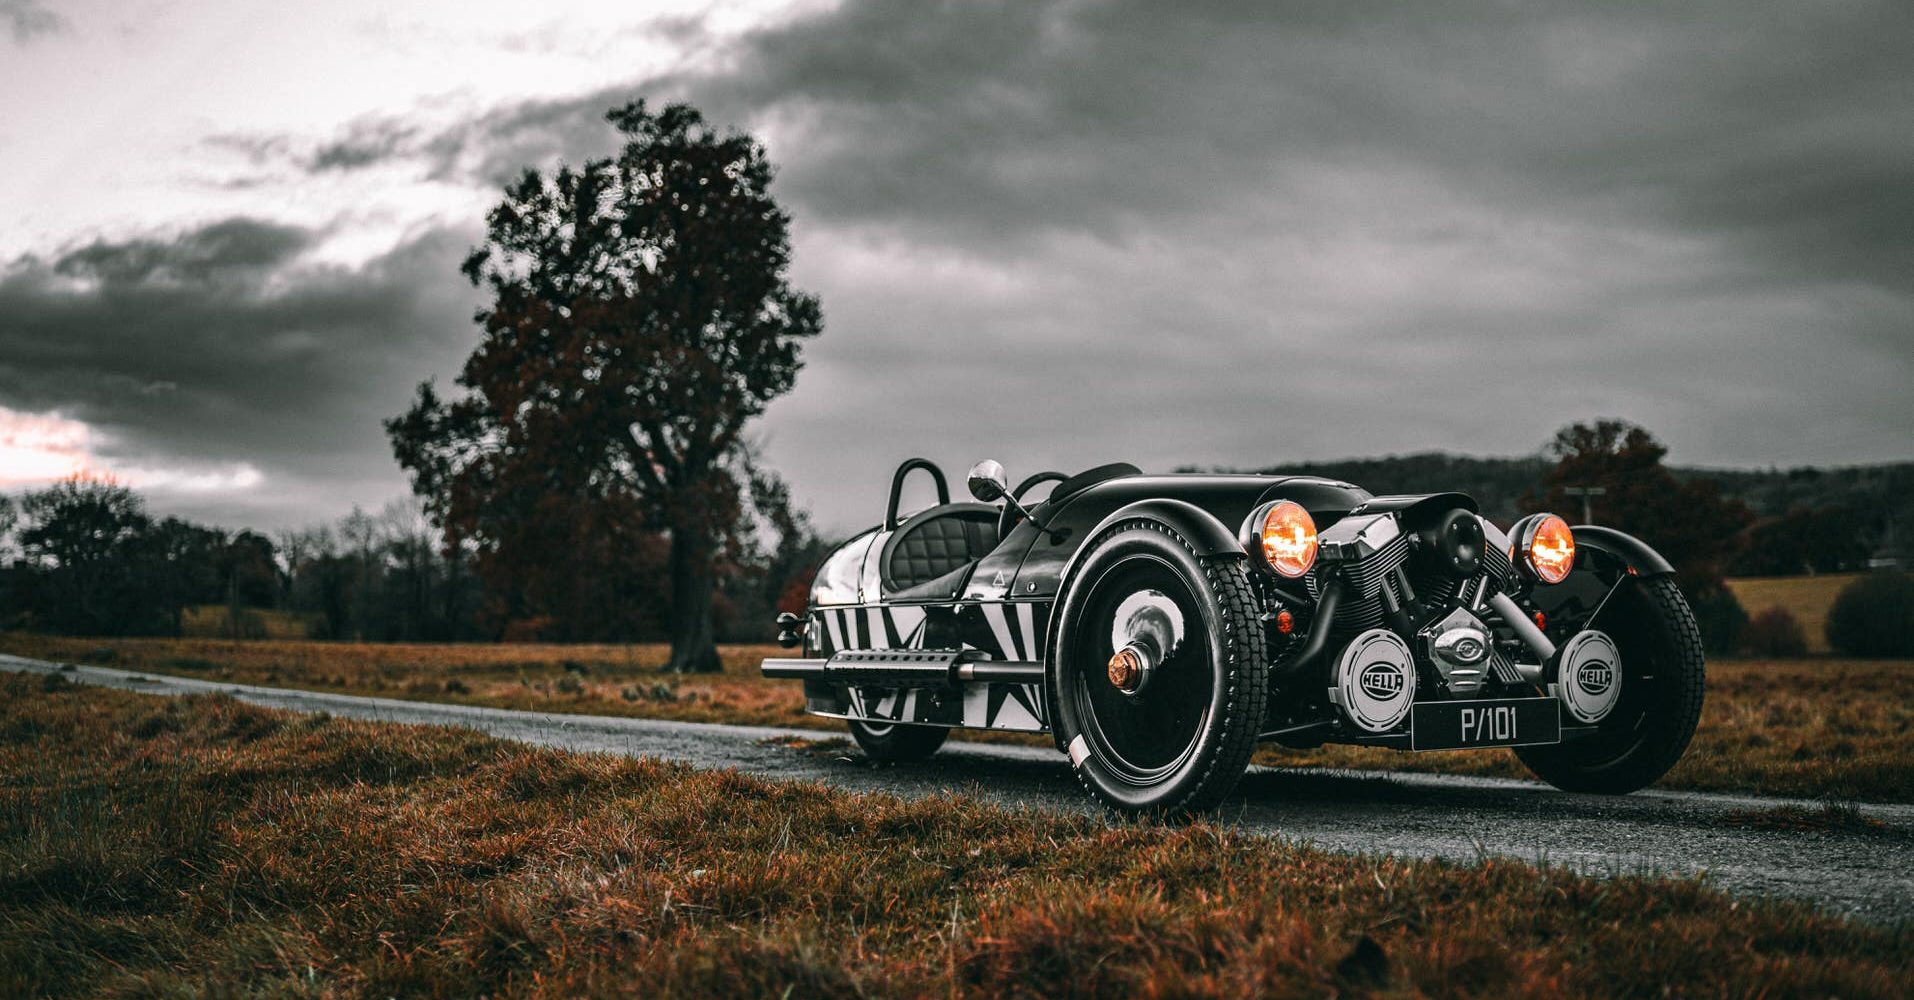 Morgan marks end of 3 Wheeler production with limited-edition P101